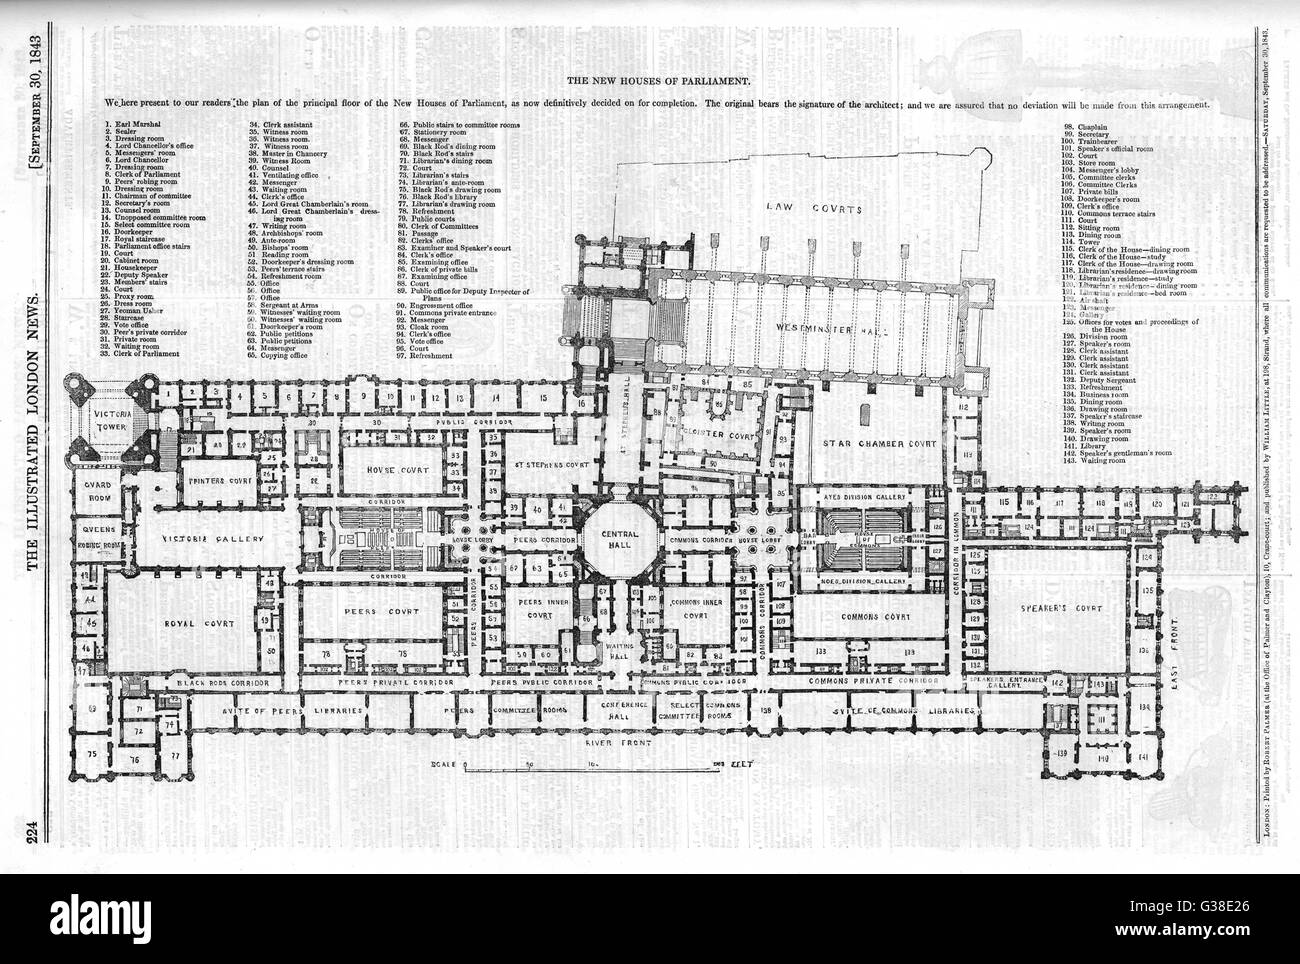 Plan of the principal floor of  the new Houses of Parliament        Date: 1843 Stock Photo